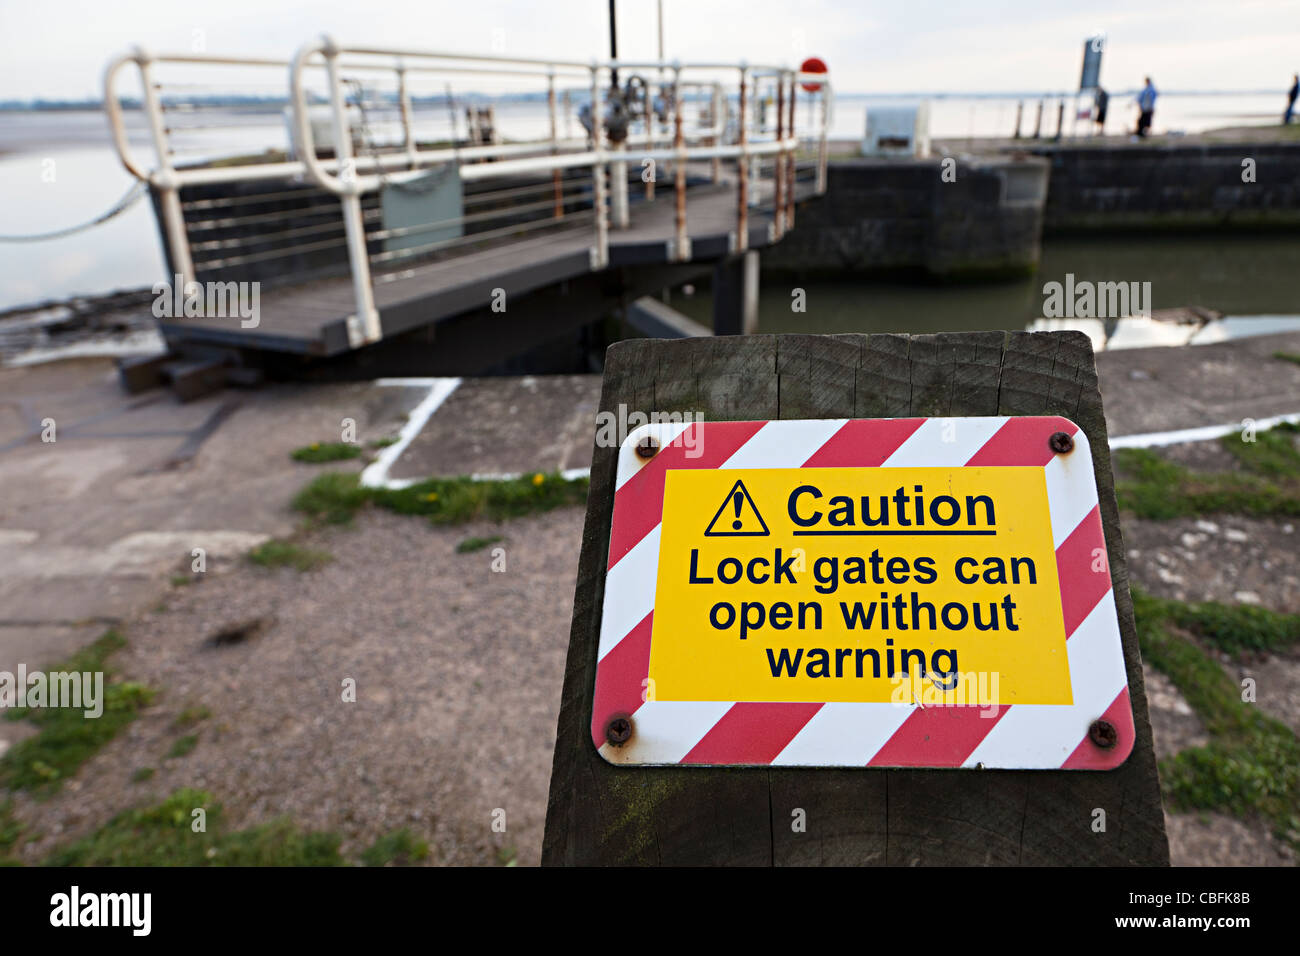 Caution lock gates can open without warning sign Lydney harbour regeneration project River Severn England UK - Stock Image